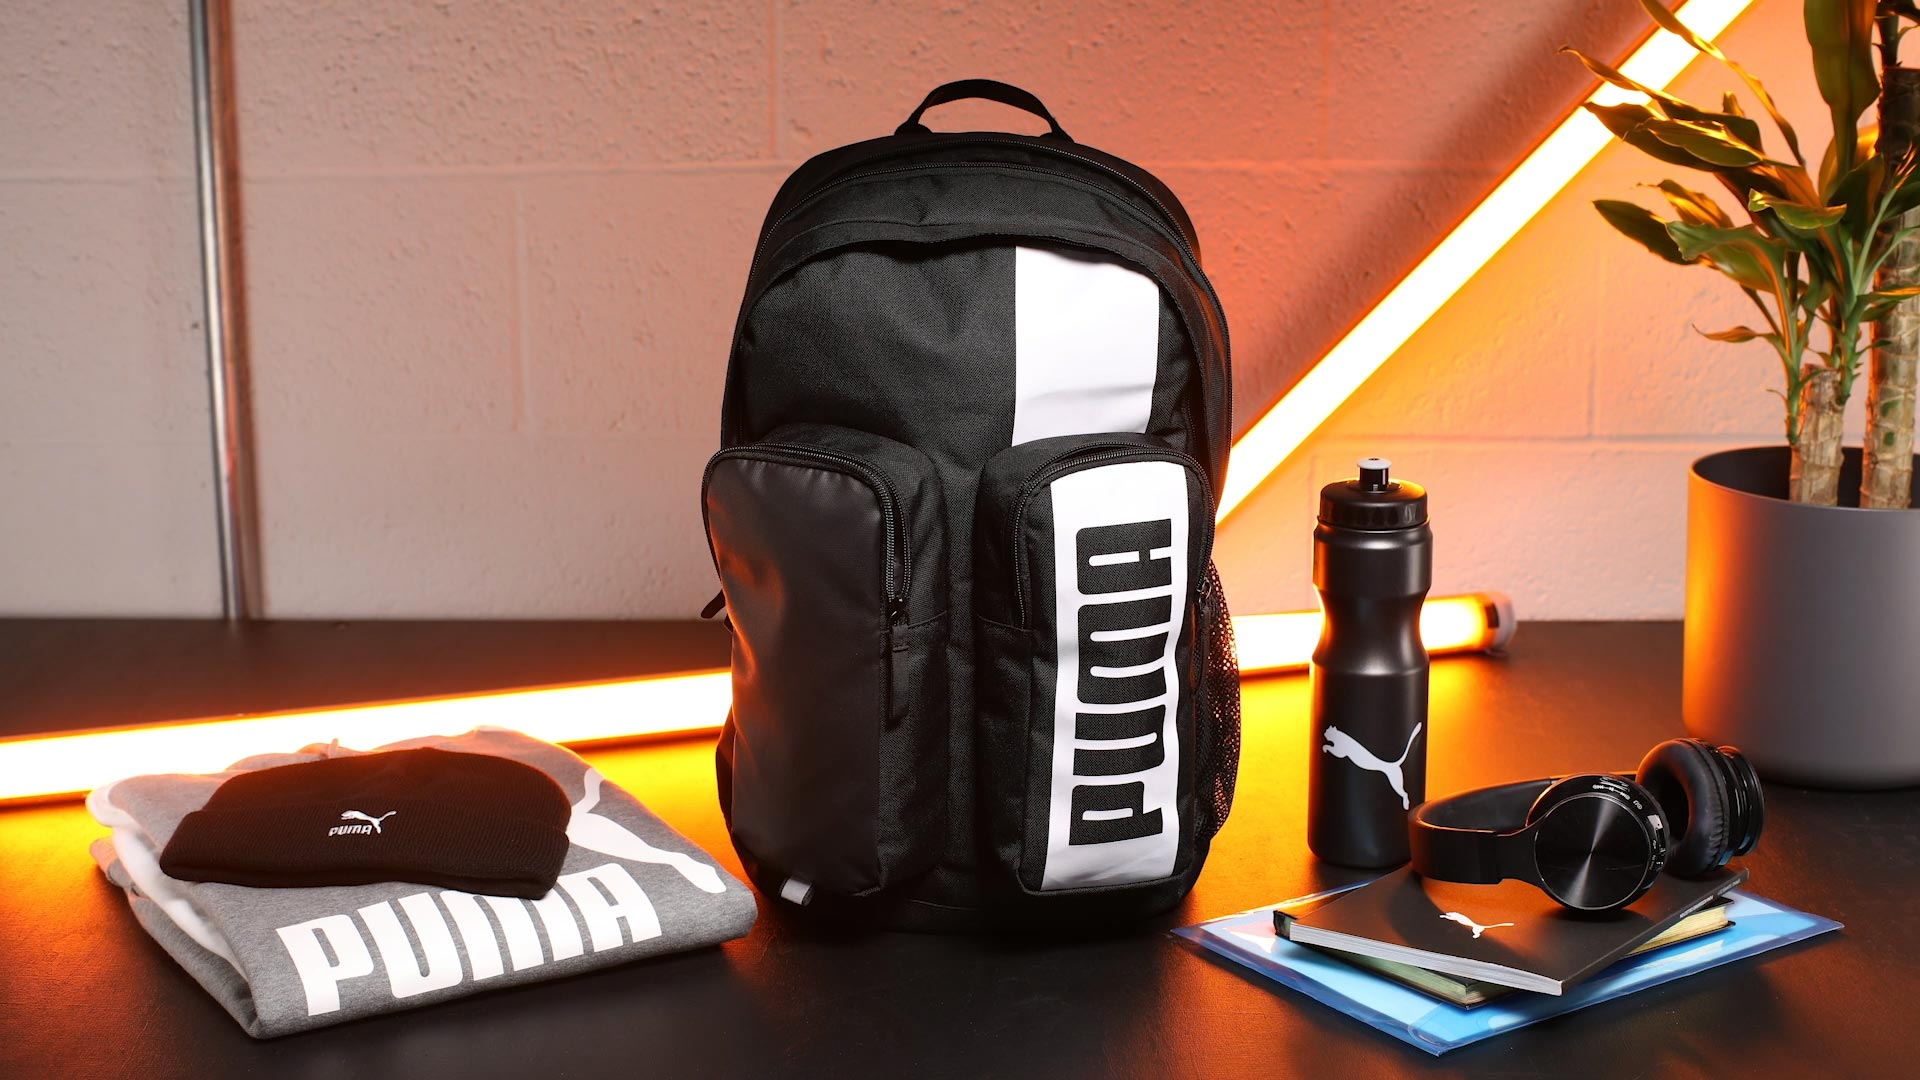 Neatly arranged objects around black Puma back pack stop motion